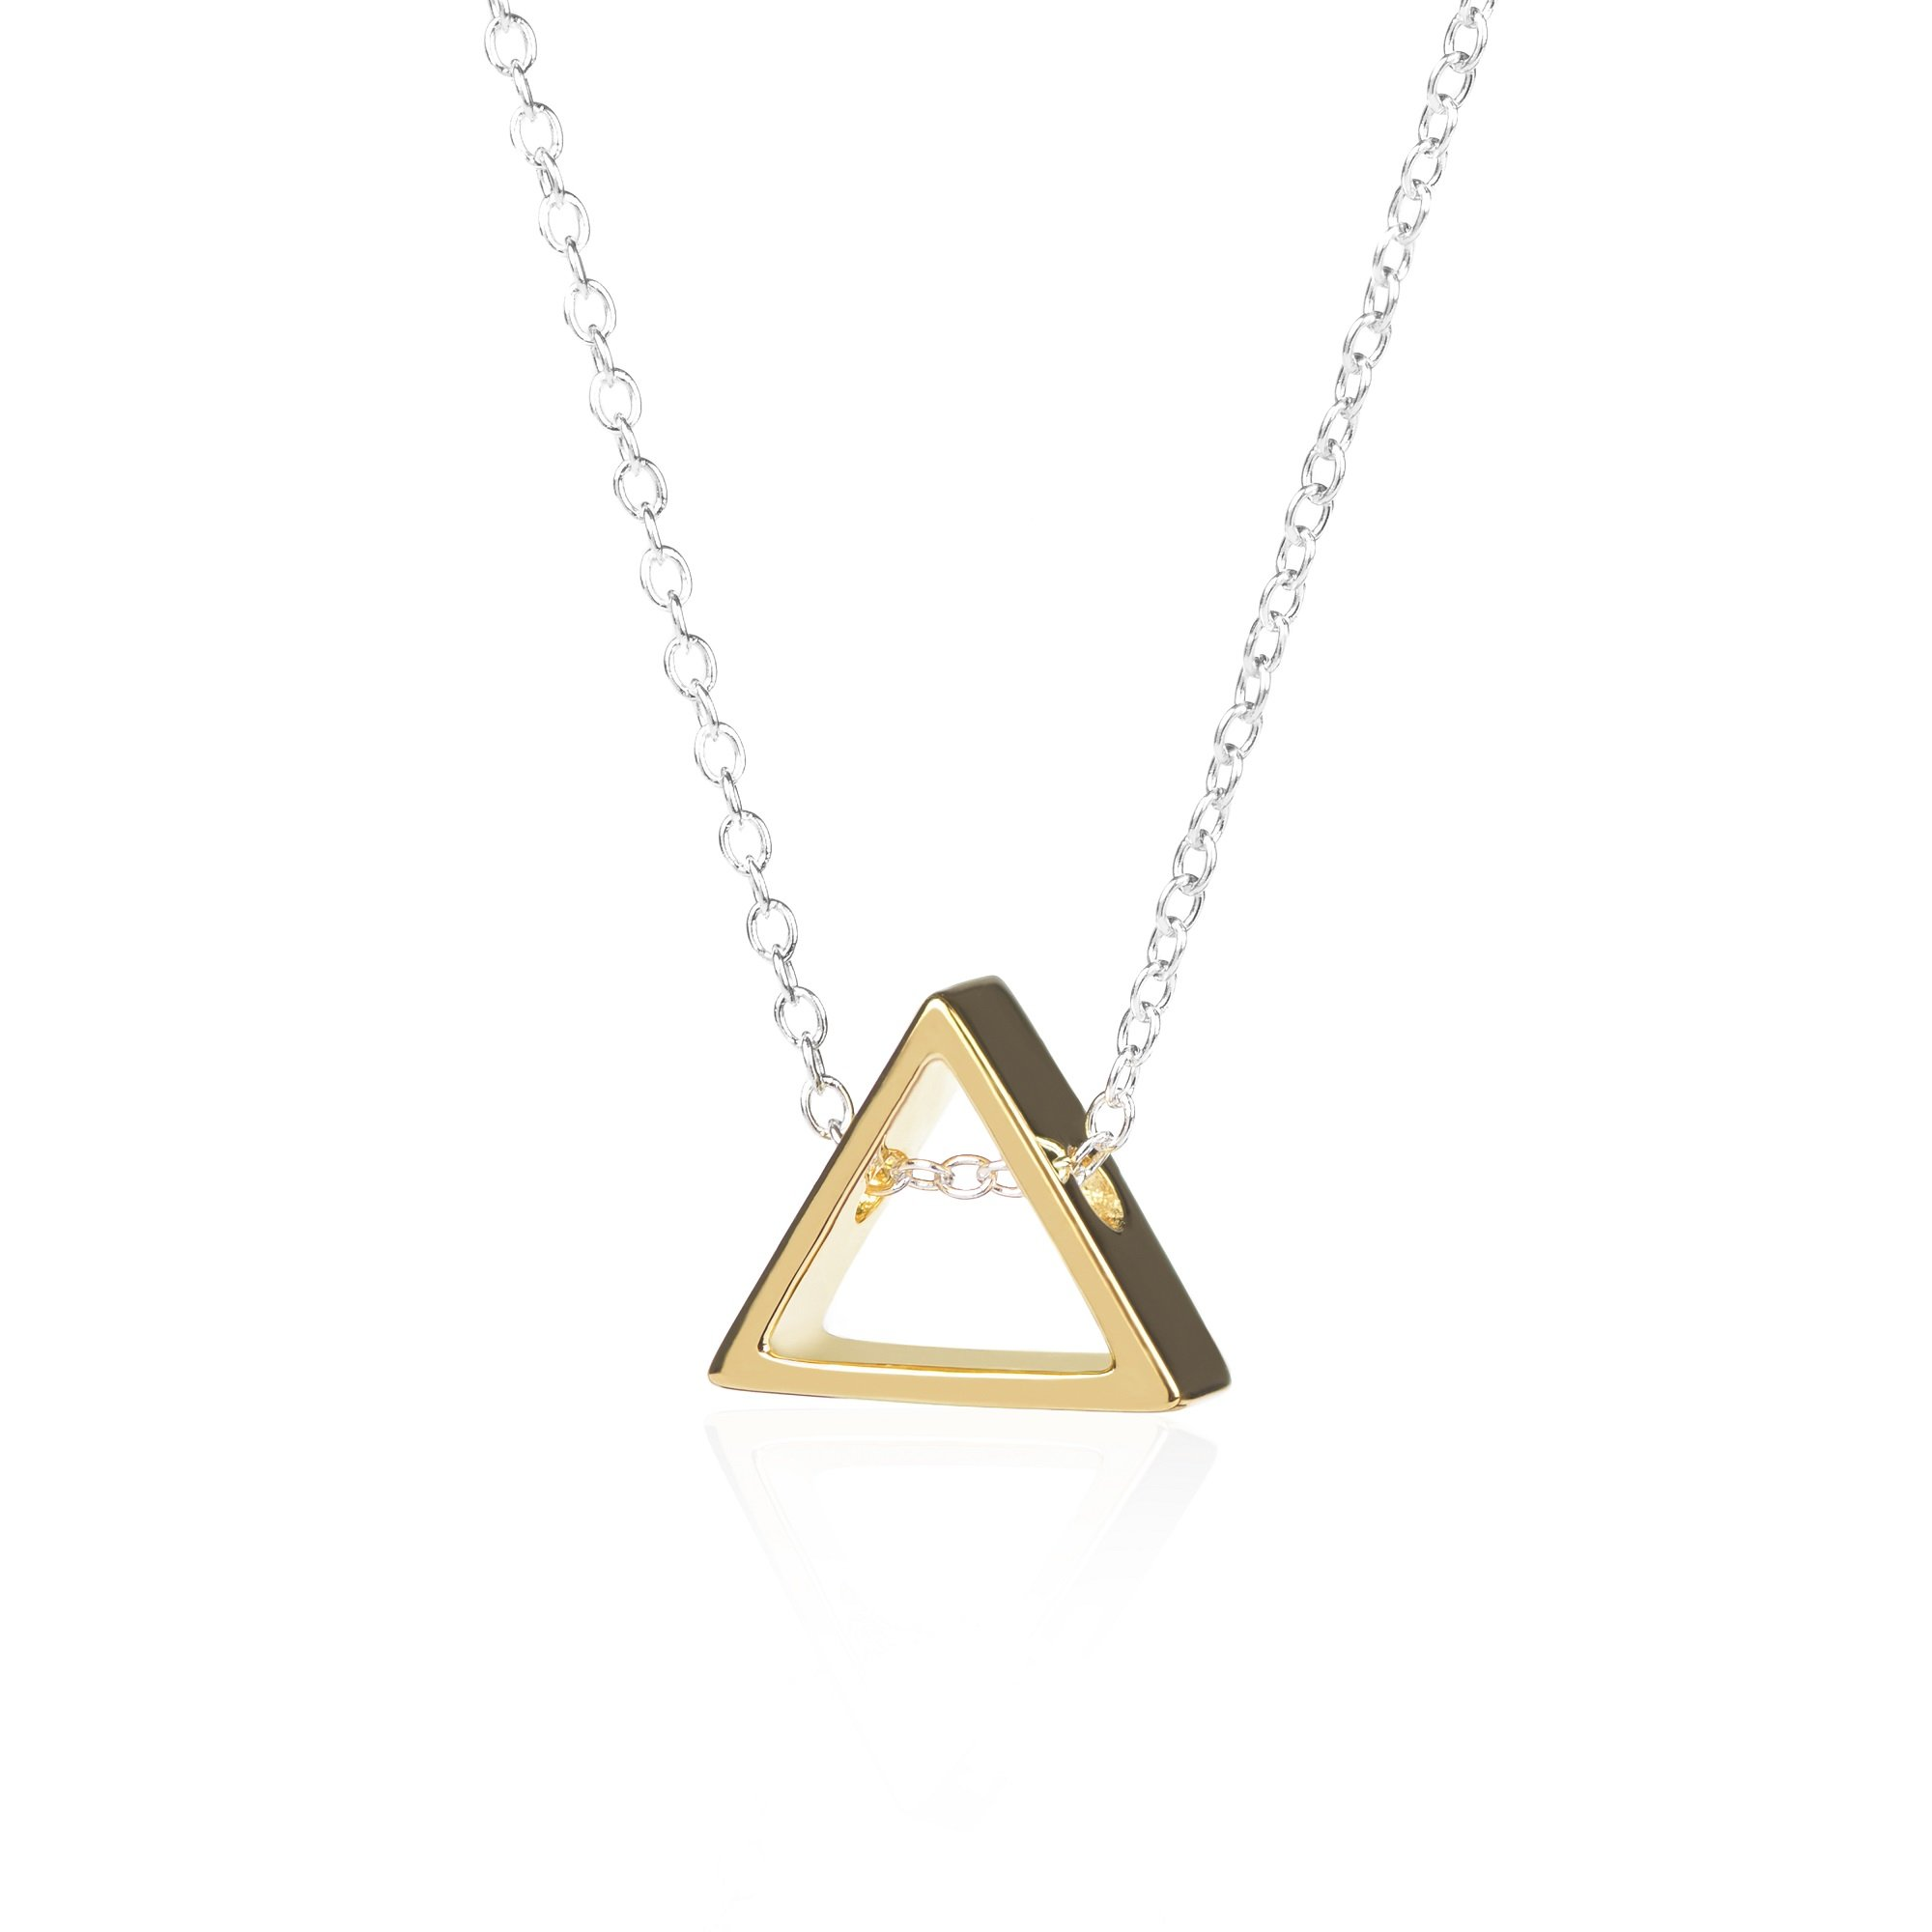 Journey Necklace by Sally Lane Jewellery on curated-crowd.com